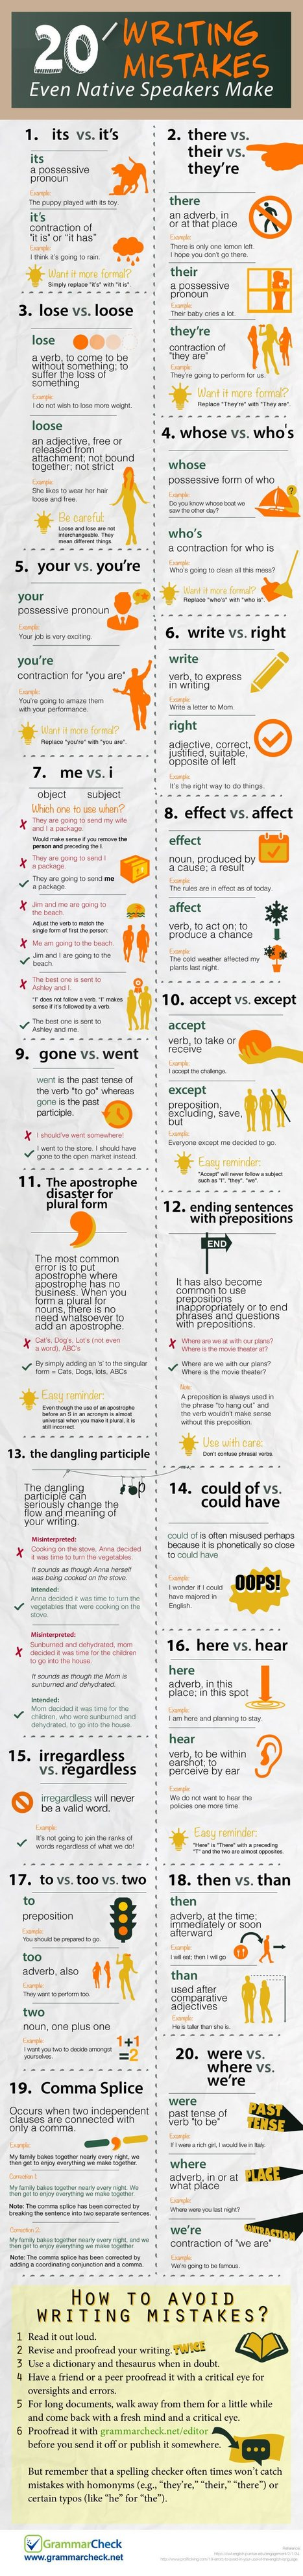 20 Writing Mistakes Even Native Speakers Make #Infographic | Internet Presence | Scoop.it